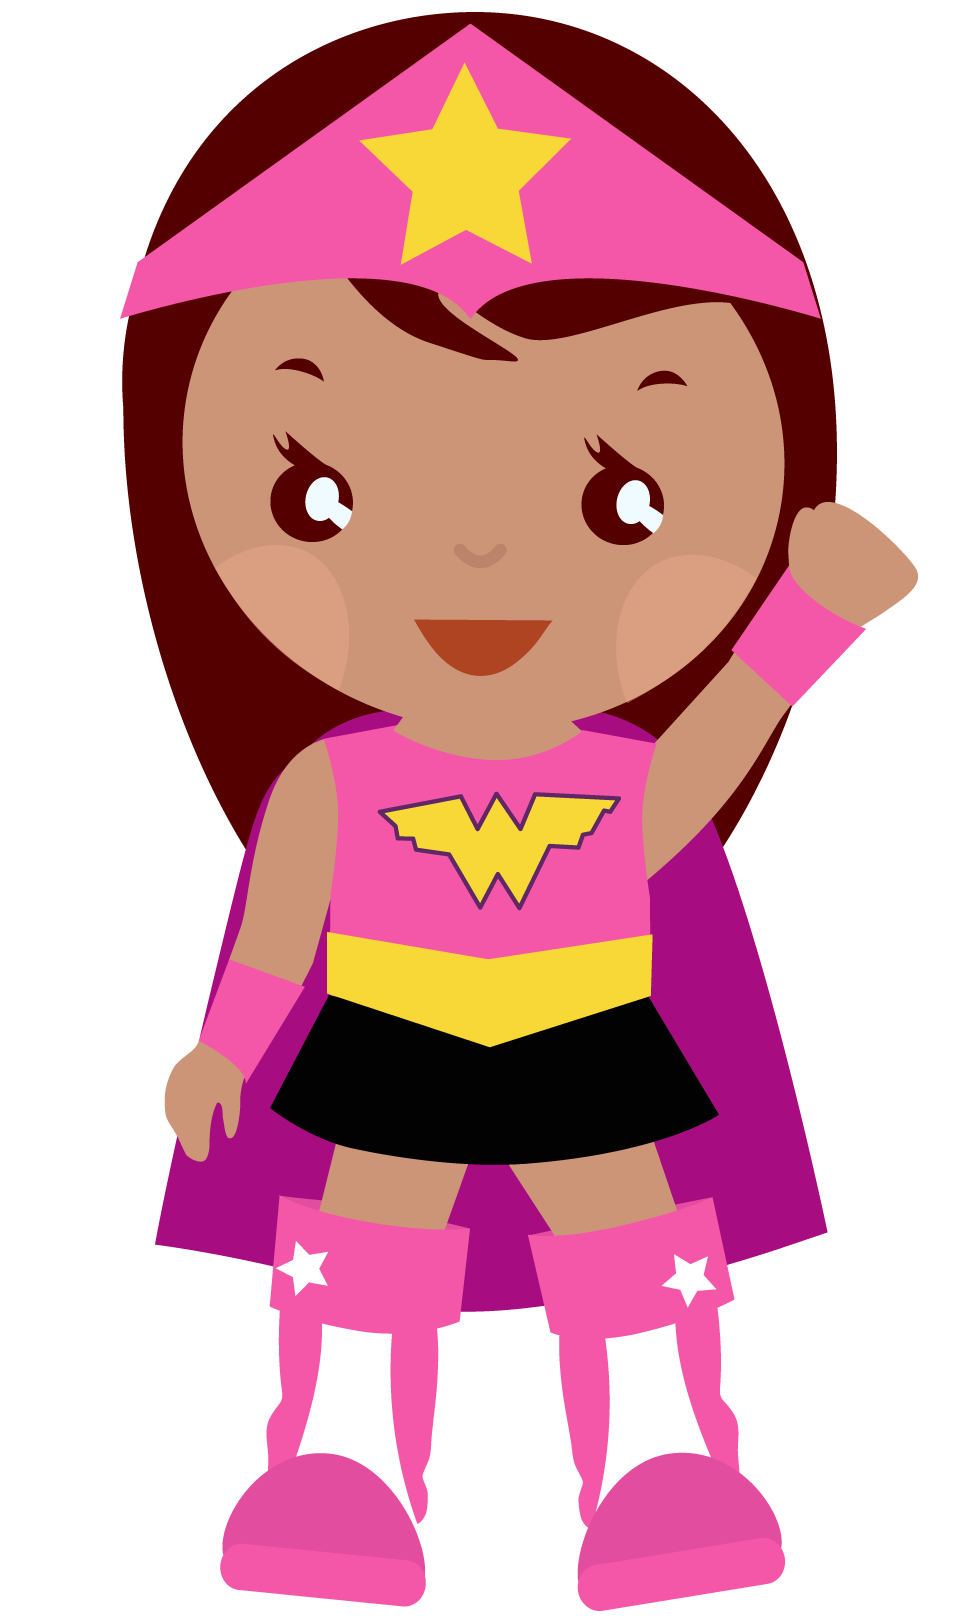 You can use supergirl clip art